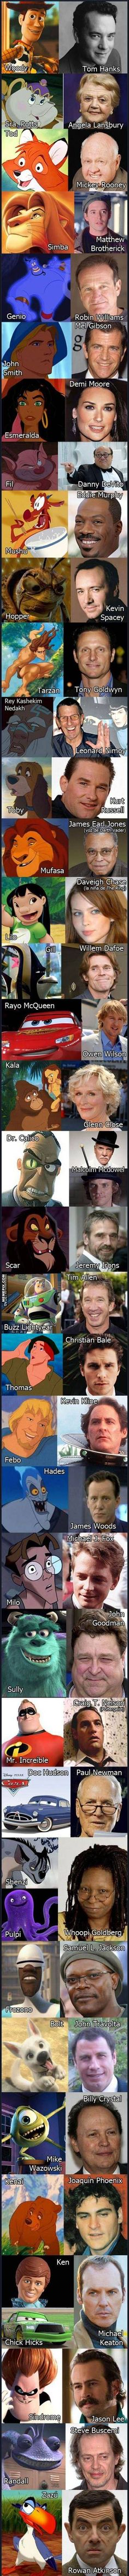 Never realized who some of the voices were